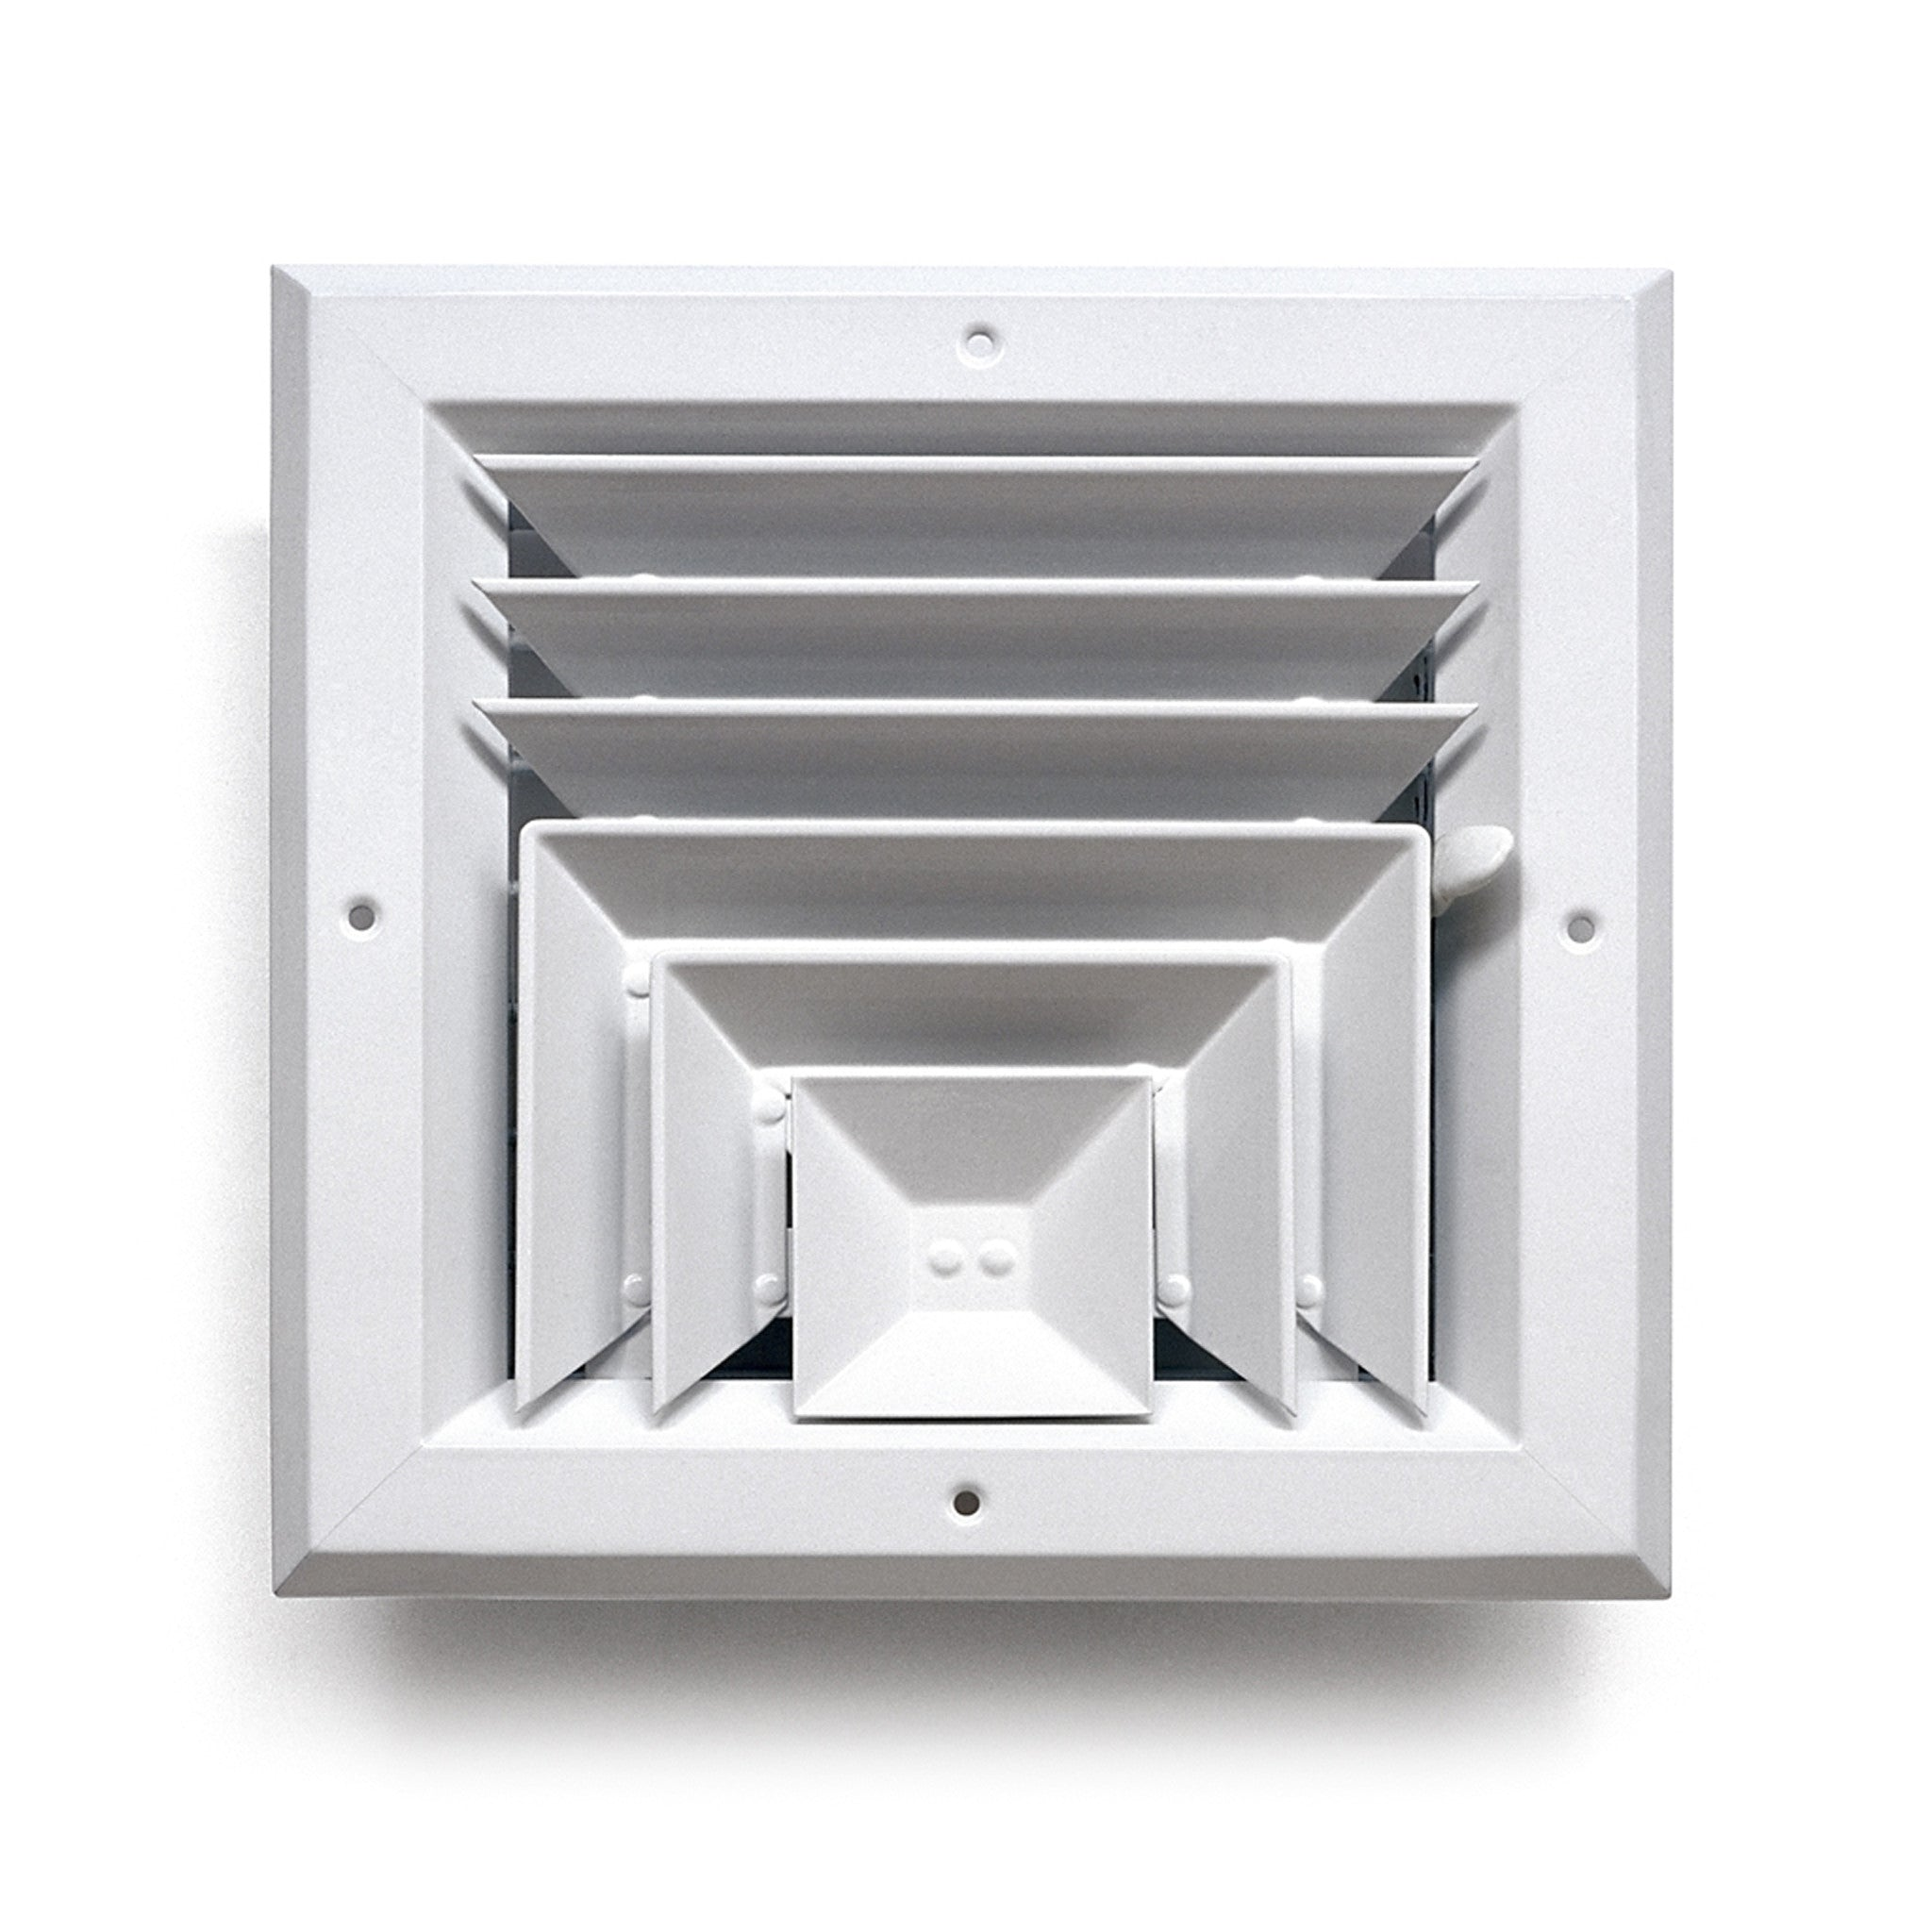 parts supply register detail ceiling hvac buy product diffuser steel on air square